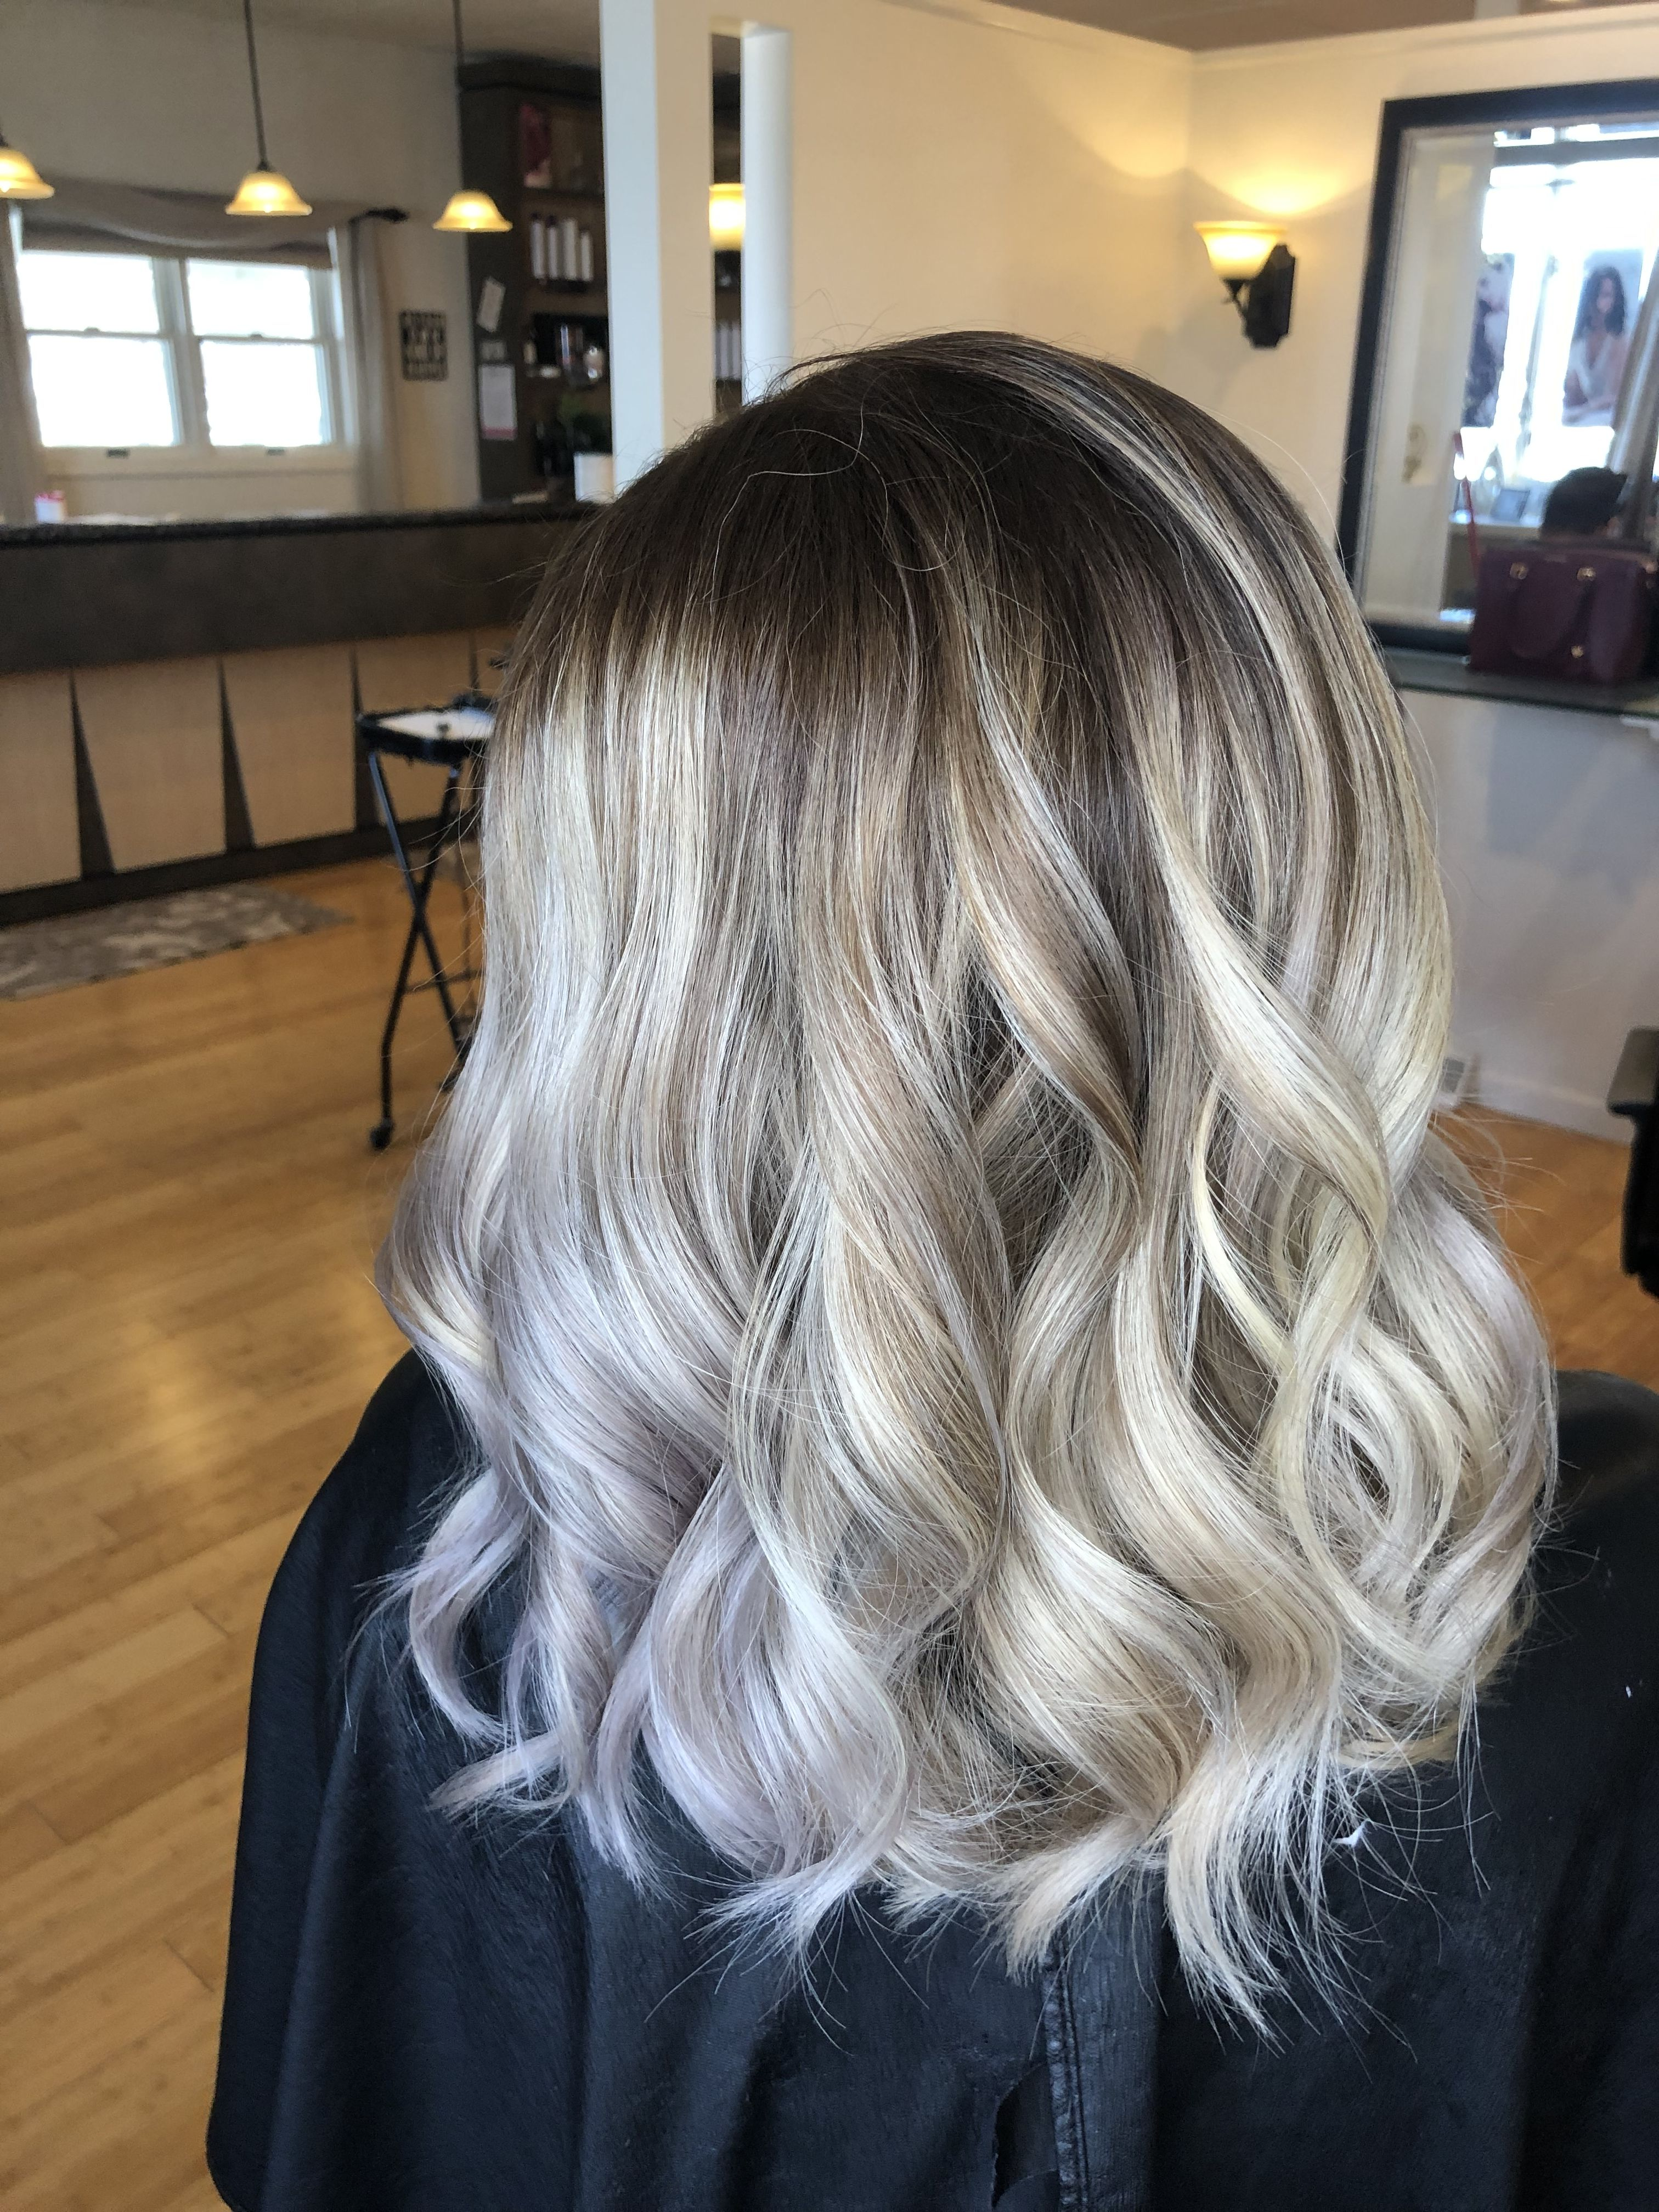 Icy Blonde Balayage With A Dark Root Icy Blonde Balayage